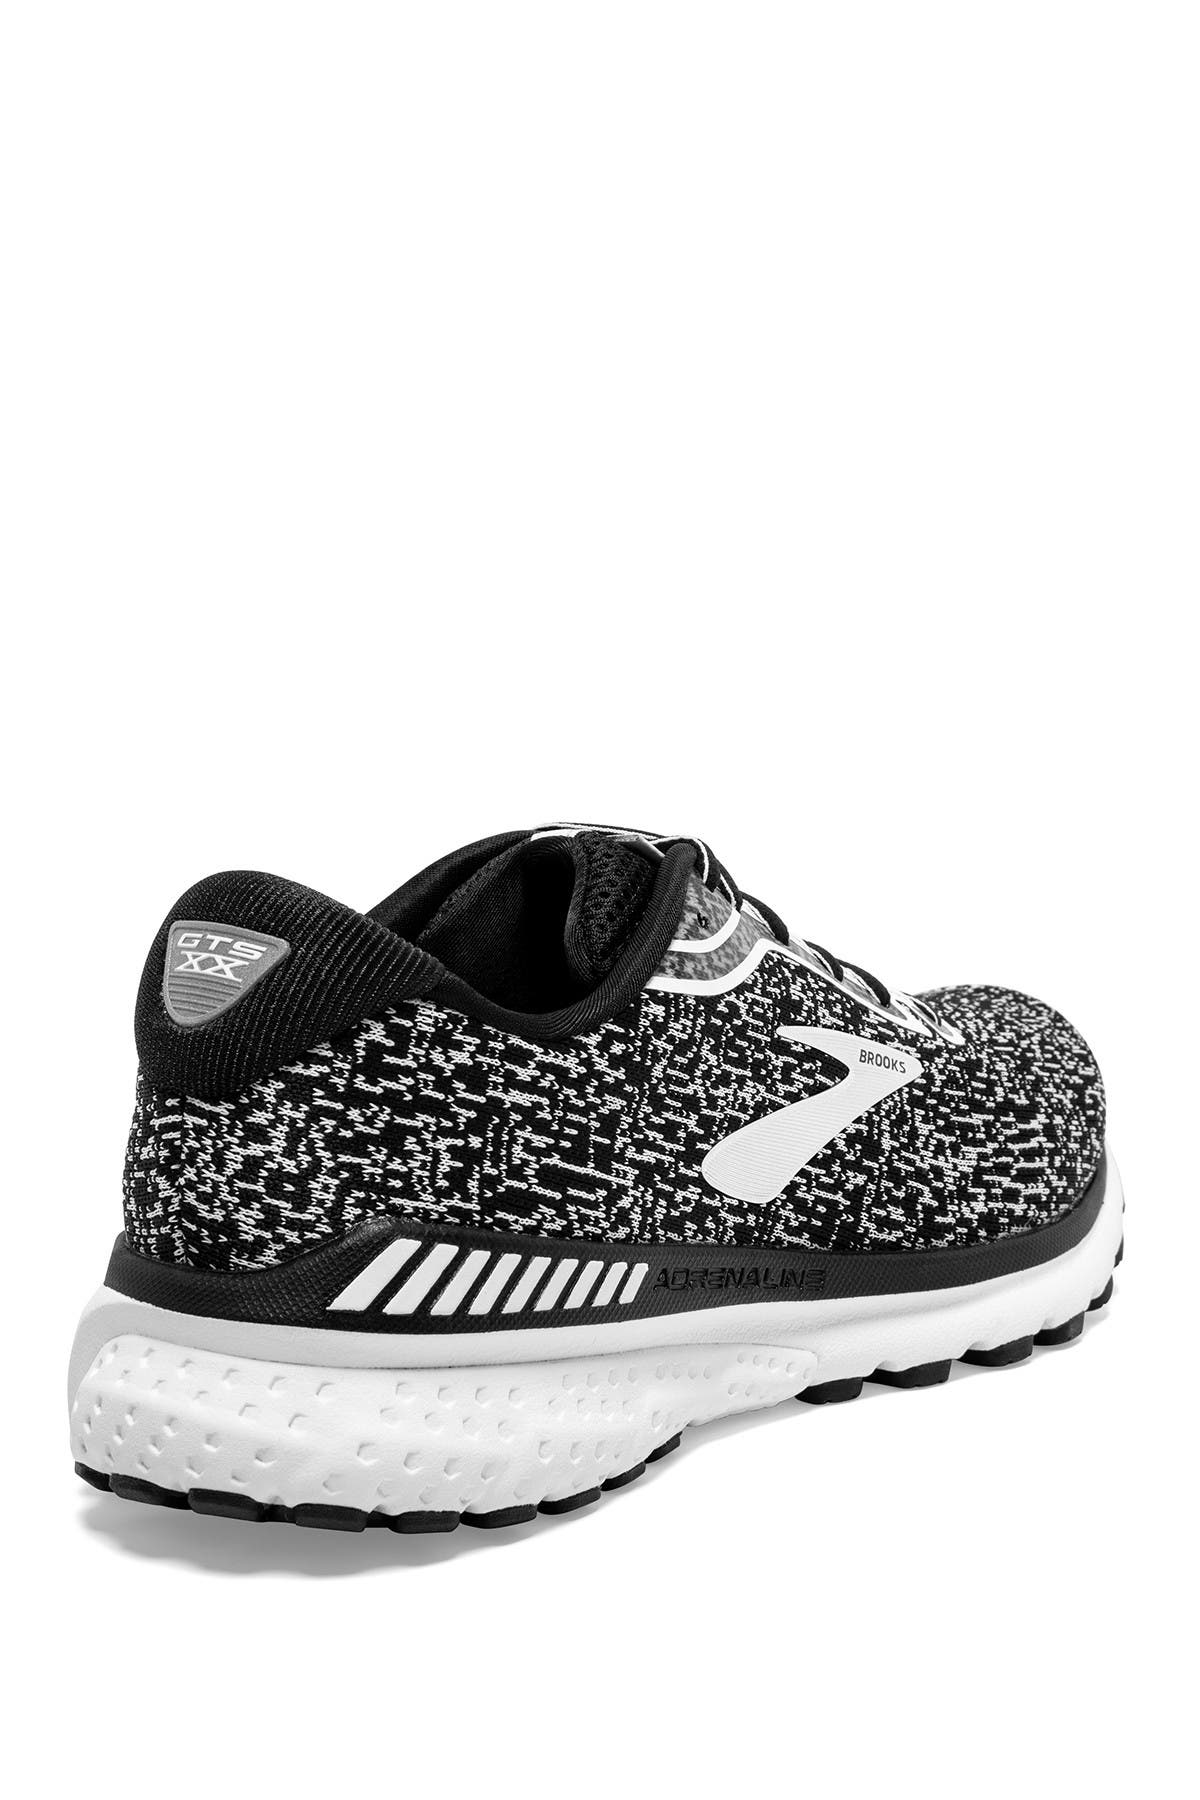 Image of Brooks Adrenaline GTS 20 Running Shoe - Multiple Widths Available